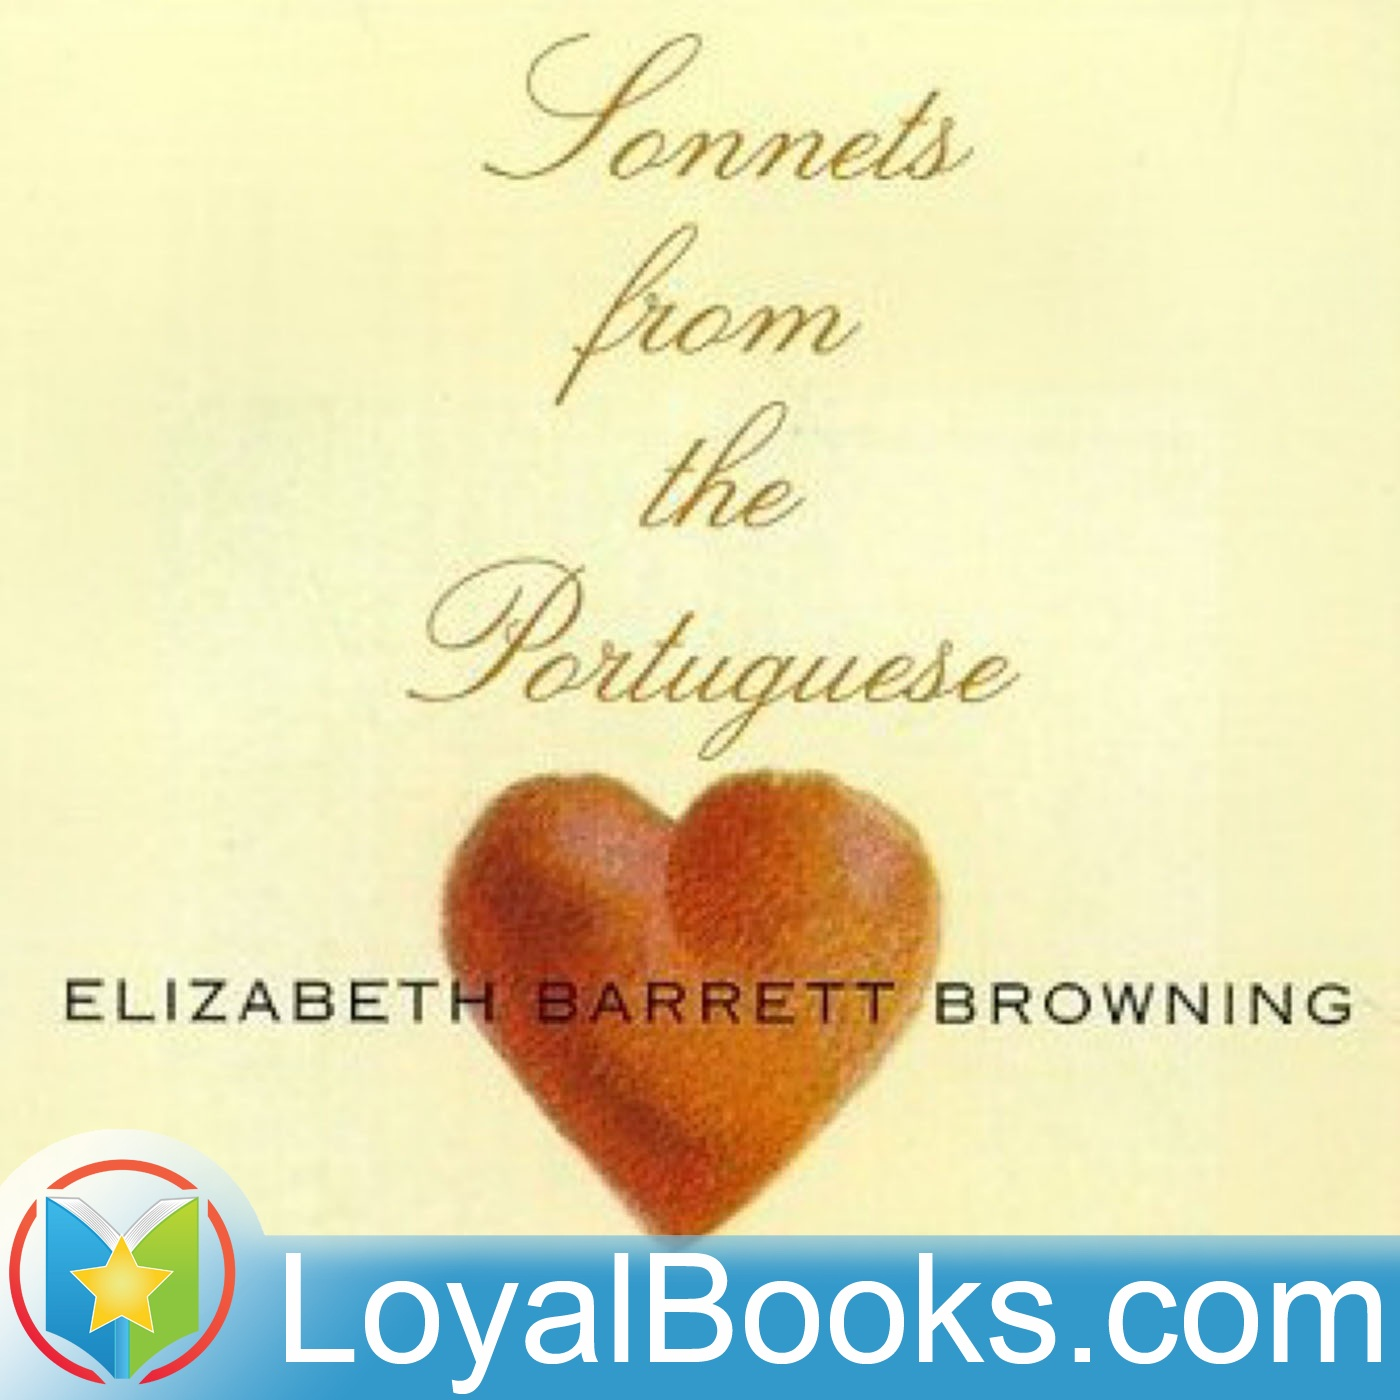 <![CDATA[Sonnets from the Portugese by Elizabeth Barrett Browning]]>